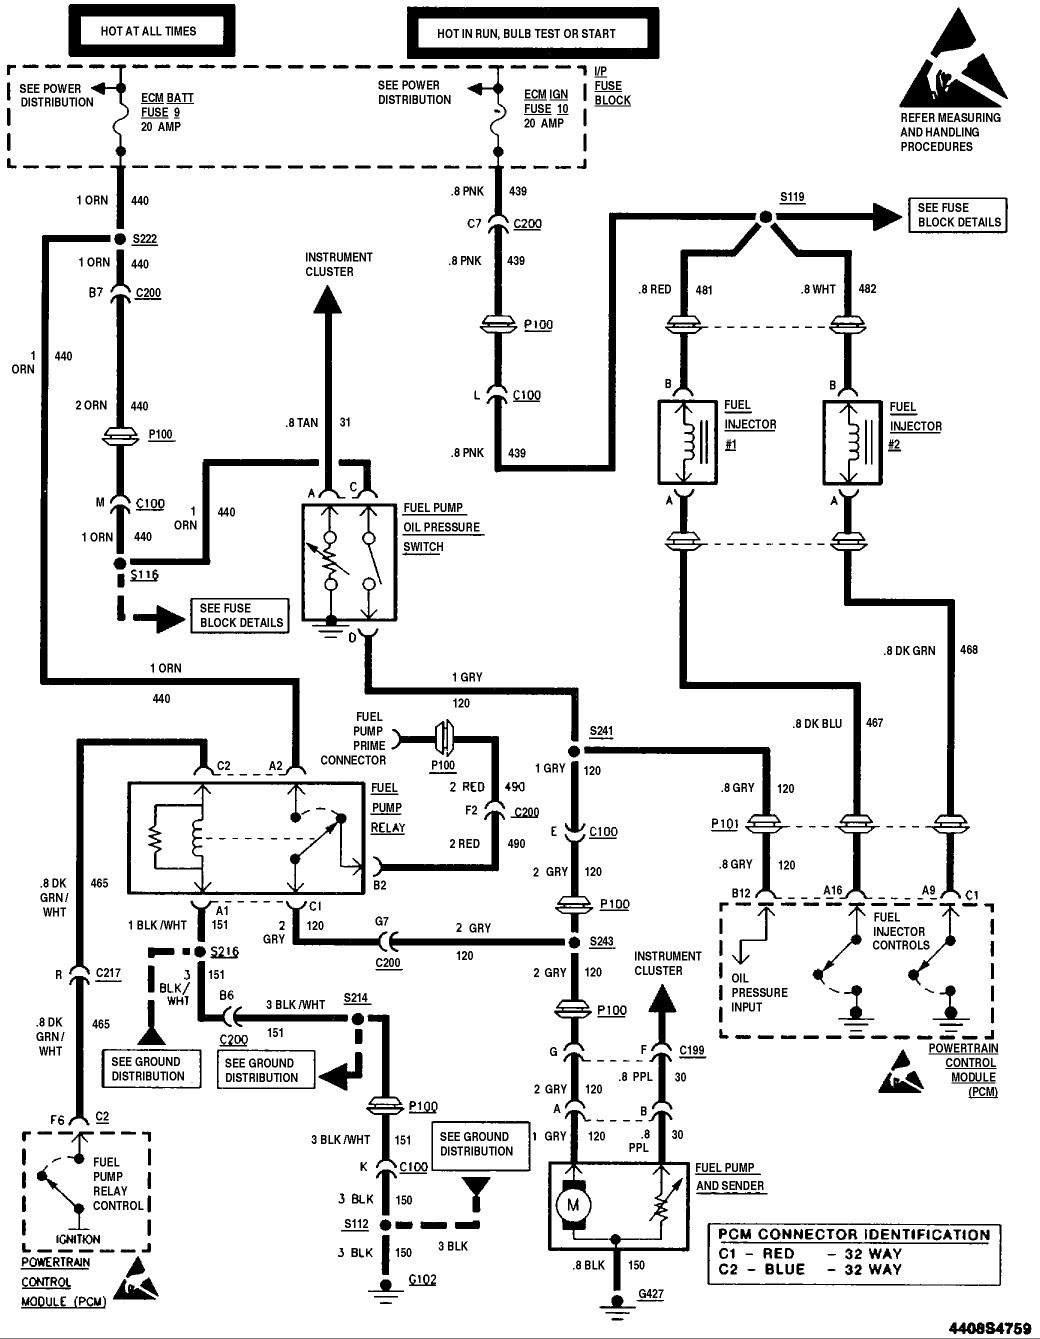 [WLLP_2054]   64E 2002 S10 Fuel Pump Wiring Diagram | Wiring Library | 1999 S10 Fuel Pump Wiring Diagram |  | Wiring Library